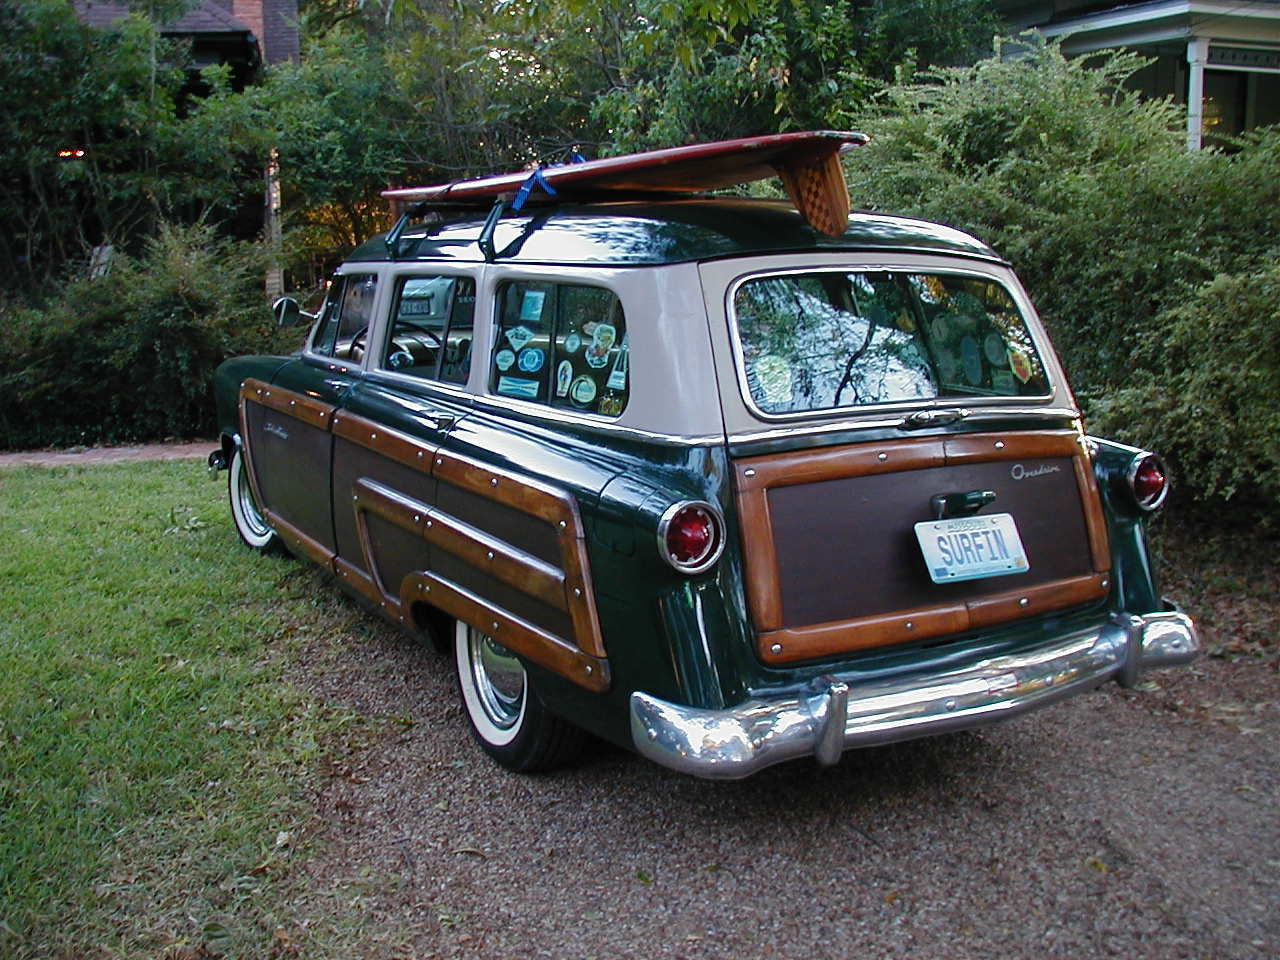 1953 ford custom woody wagon surf station wagon woodie. Black Bedroom Furniture Sets. Home Design Ideas